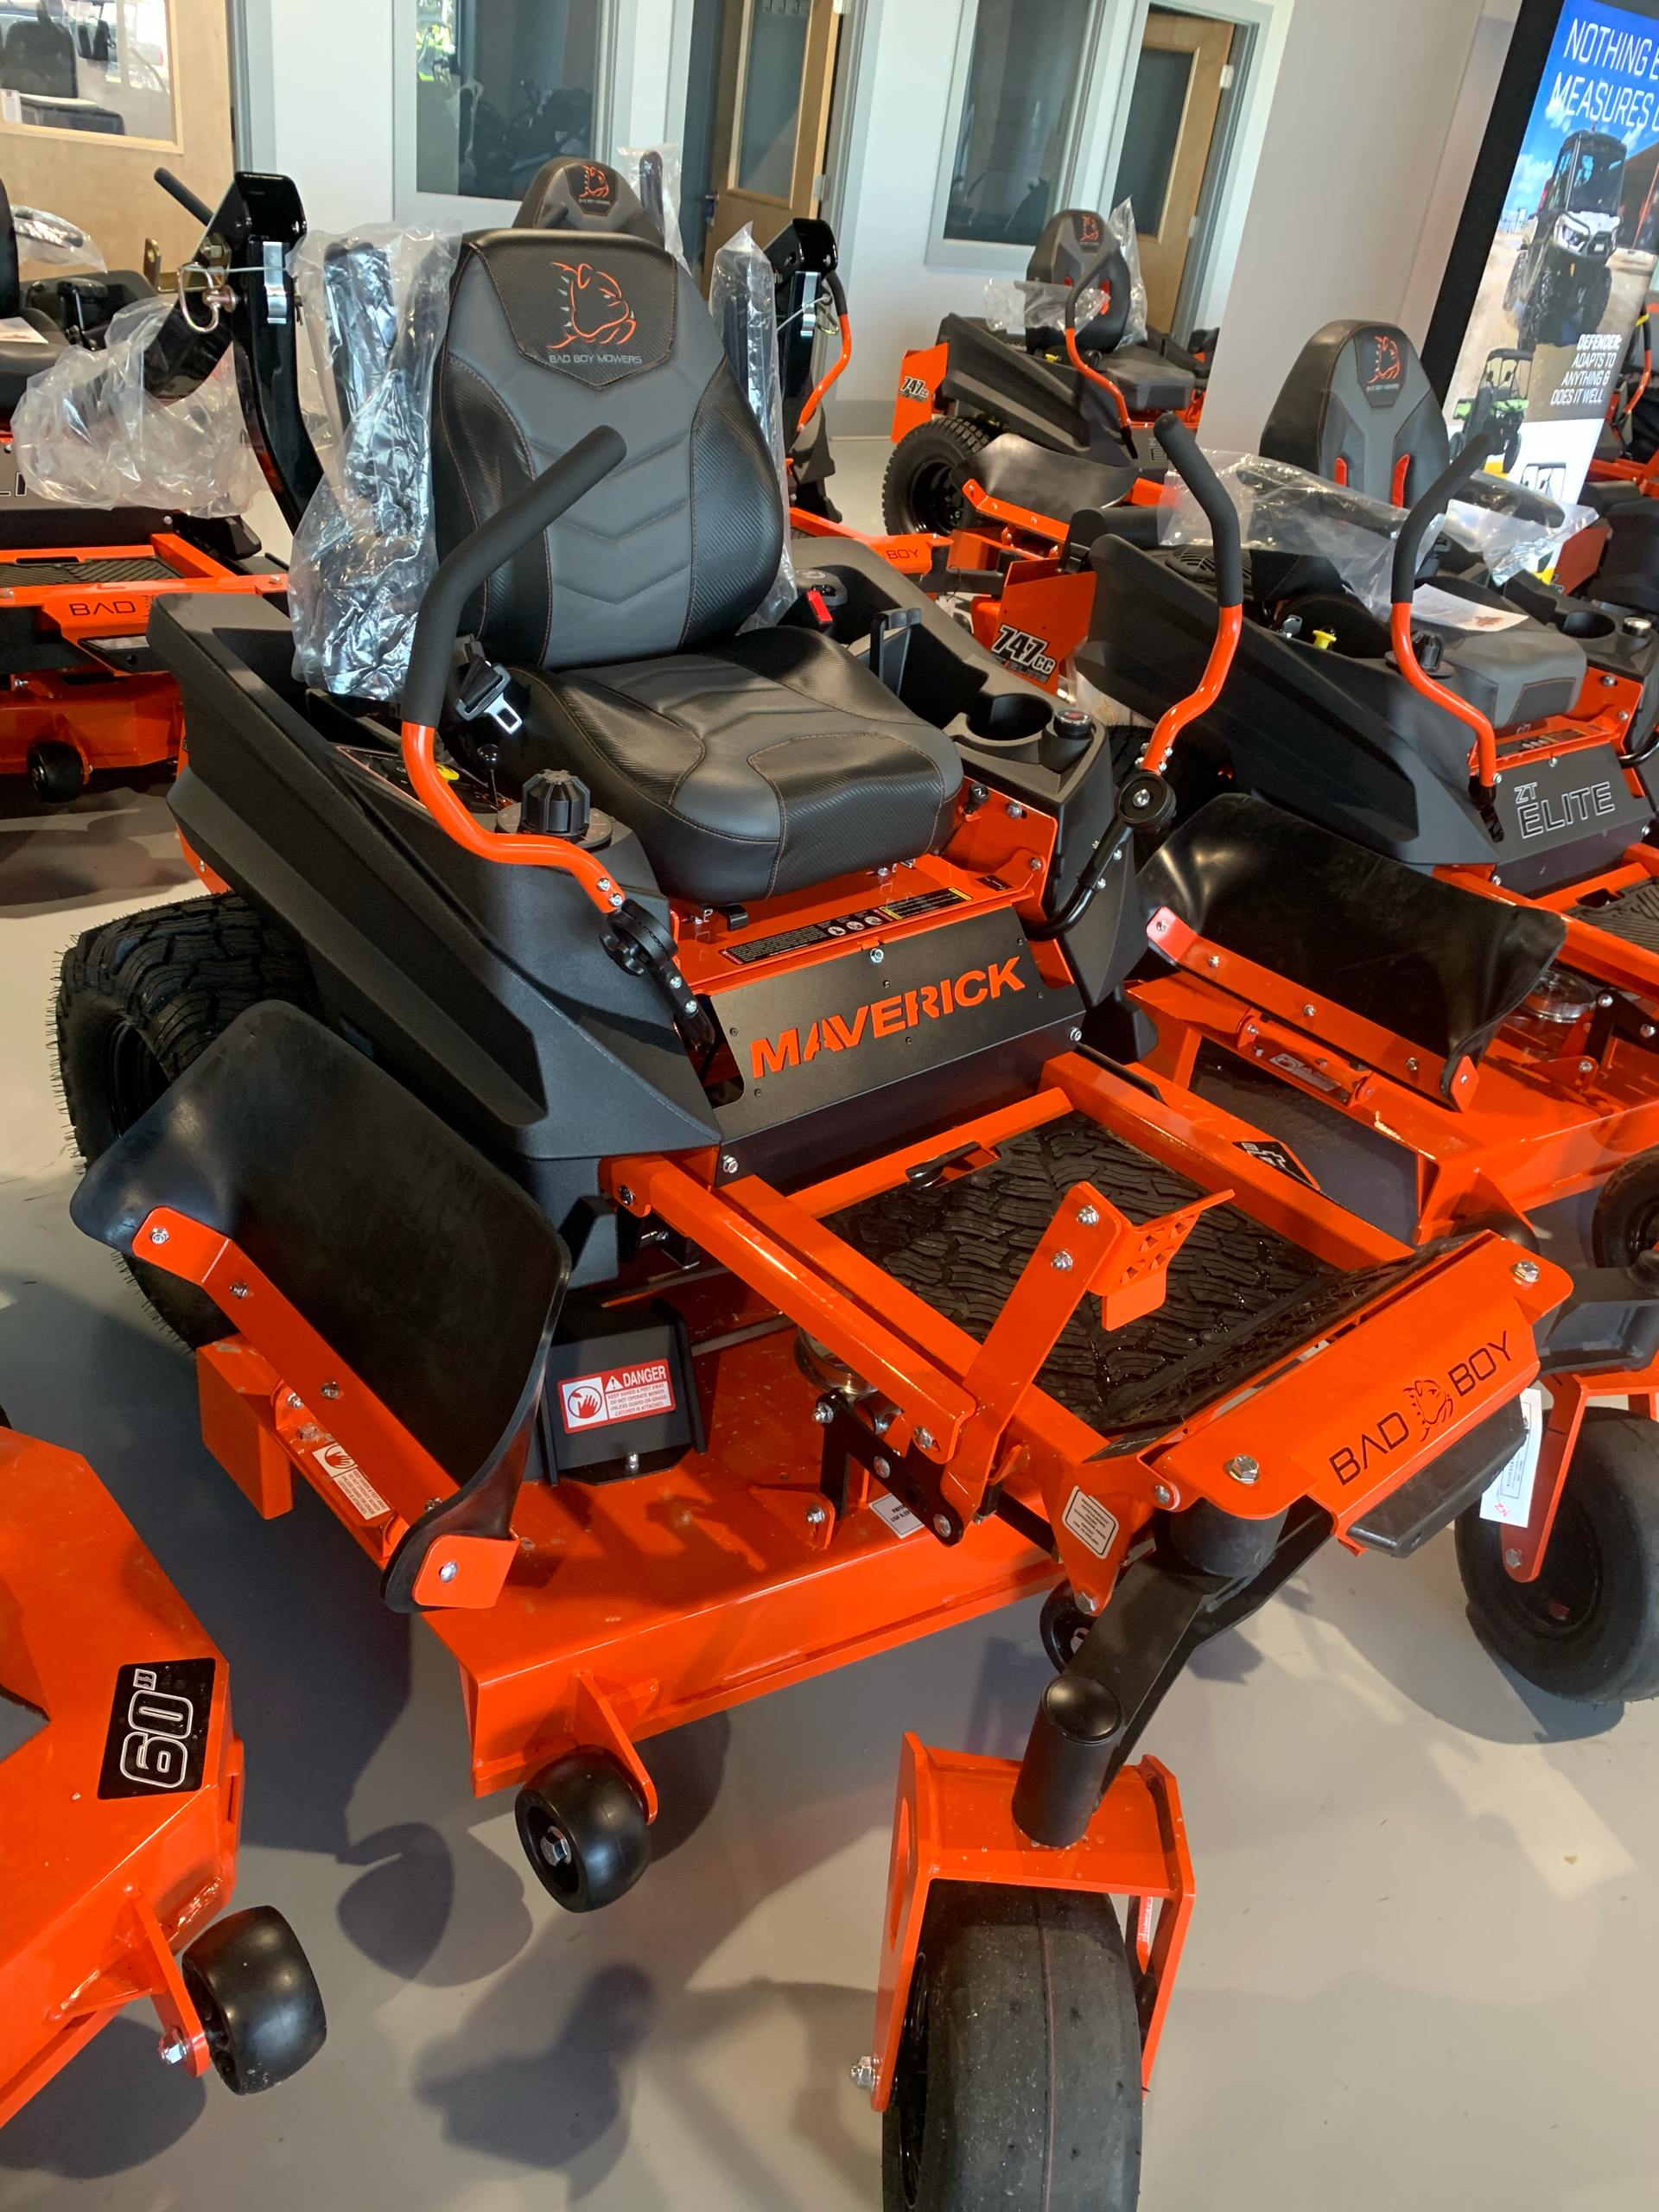 2021 Bad Boy Mowers Maverick 54 in. Kohler Confidant 747 cc in Valdosta, Georgia - Photo 4